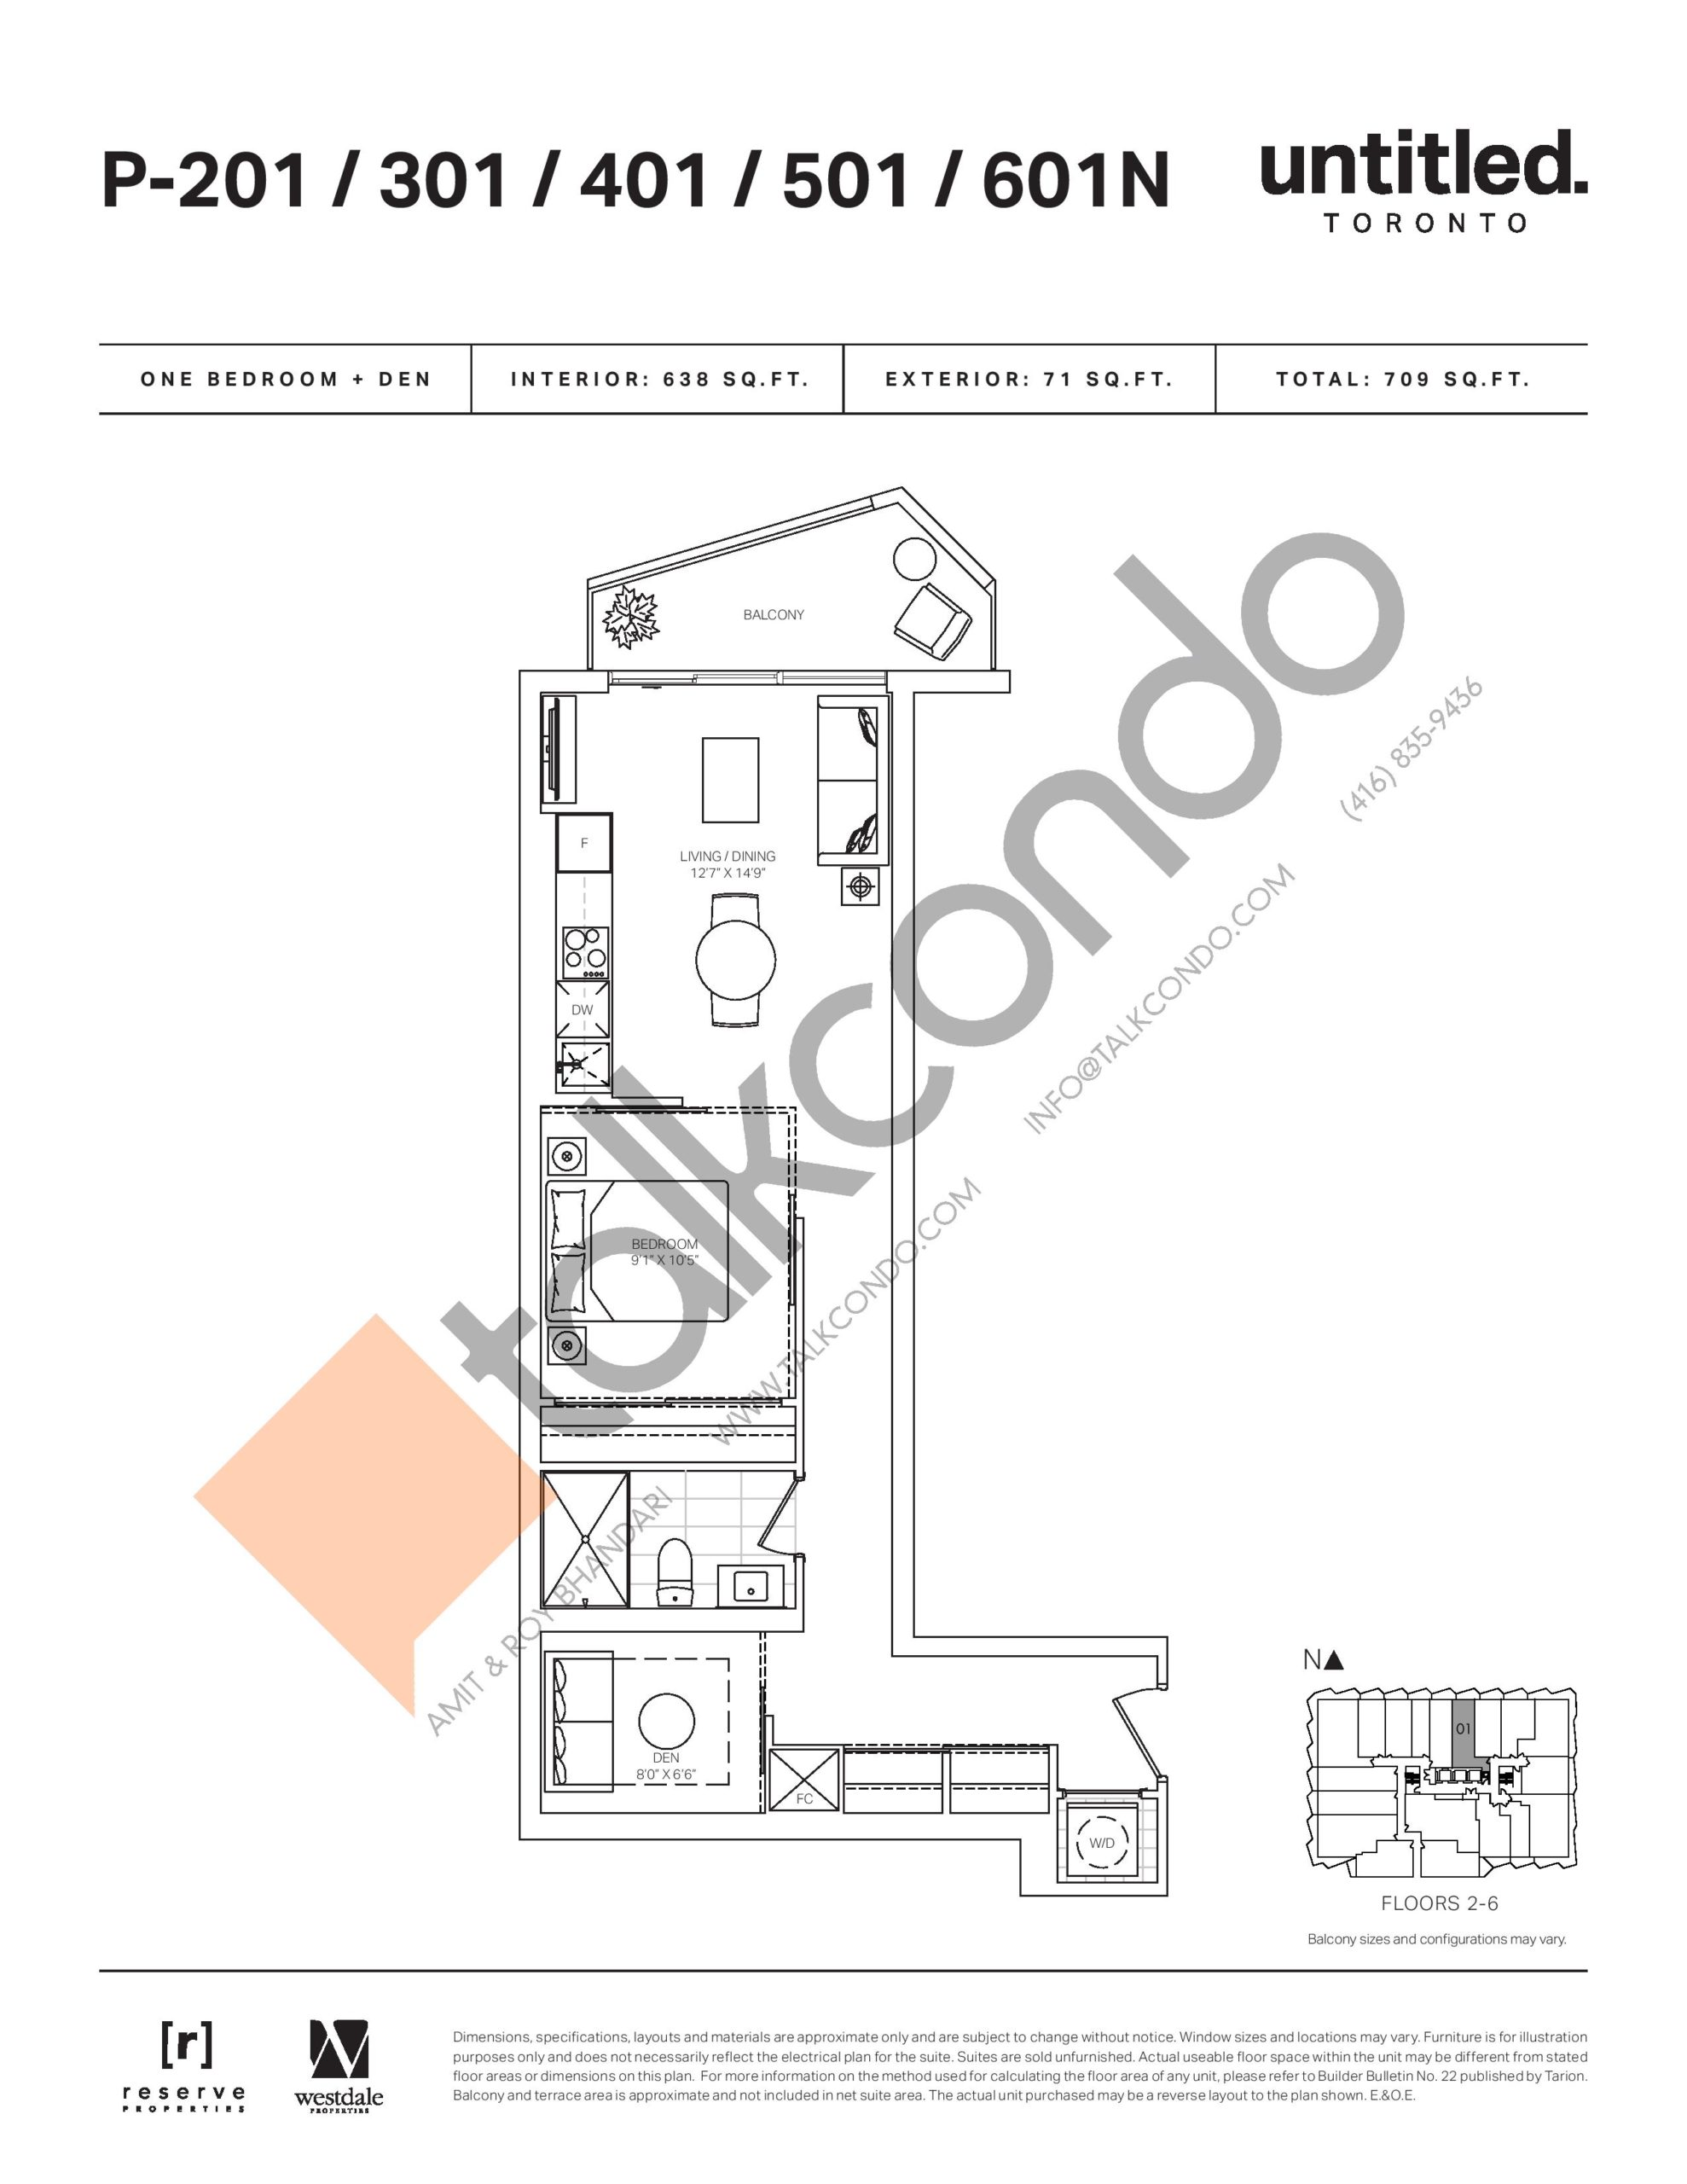 P-201 / 301 / 401 / 501 / 601N Floor Plan at Untitled North Tower Condos - 638 sq.ft